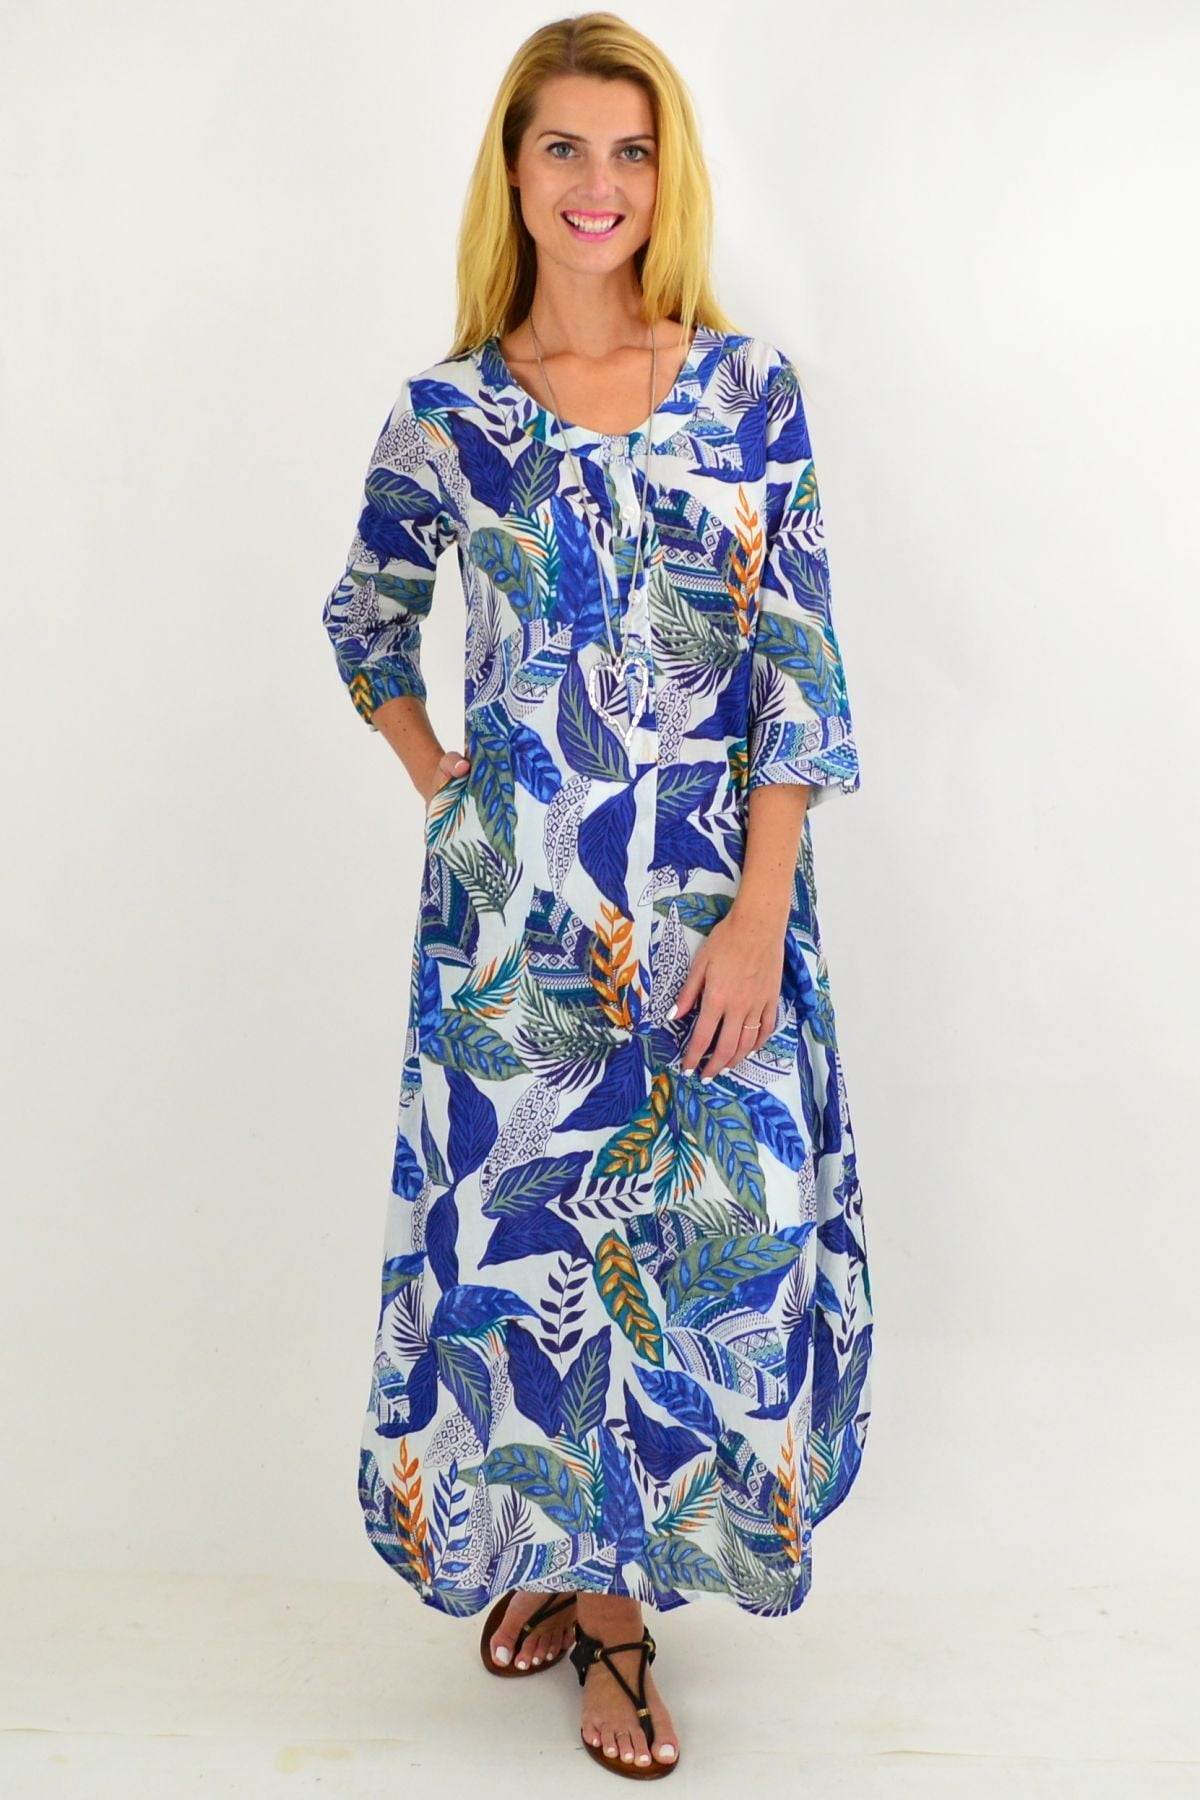 Blue Leaf One Summer Maxi Tunic Dress | I Love Tunics | Tunic Tops | Tunic | Tunic Dresses  | womens clothing online